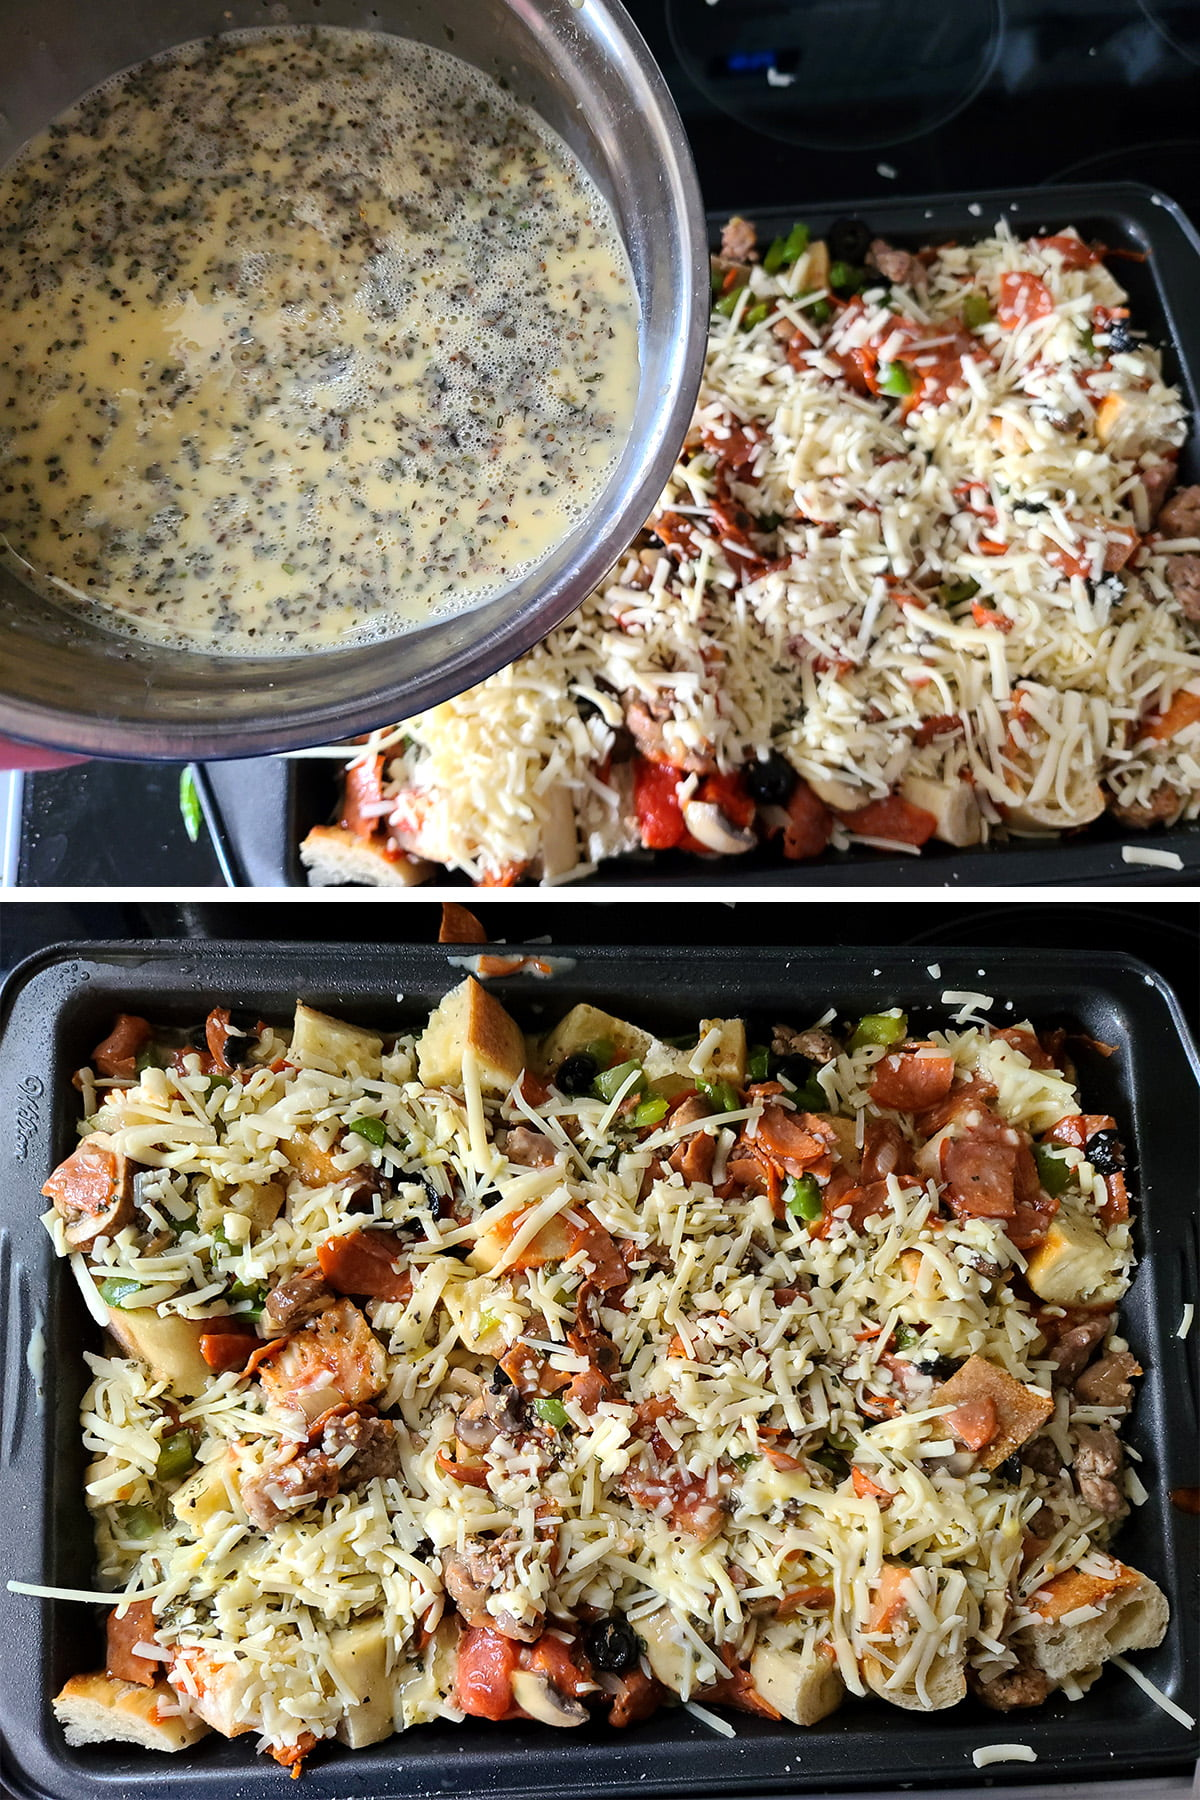 A two part compilation image showing the bowl of egg mixture being held above the pan of layered ingredients, then the pan with the egg mixture poured over everything.